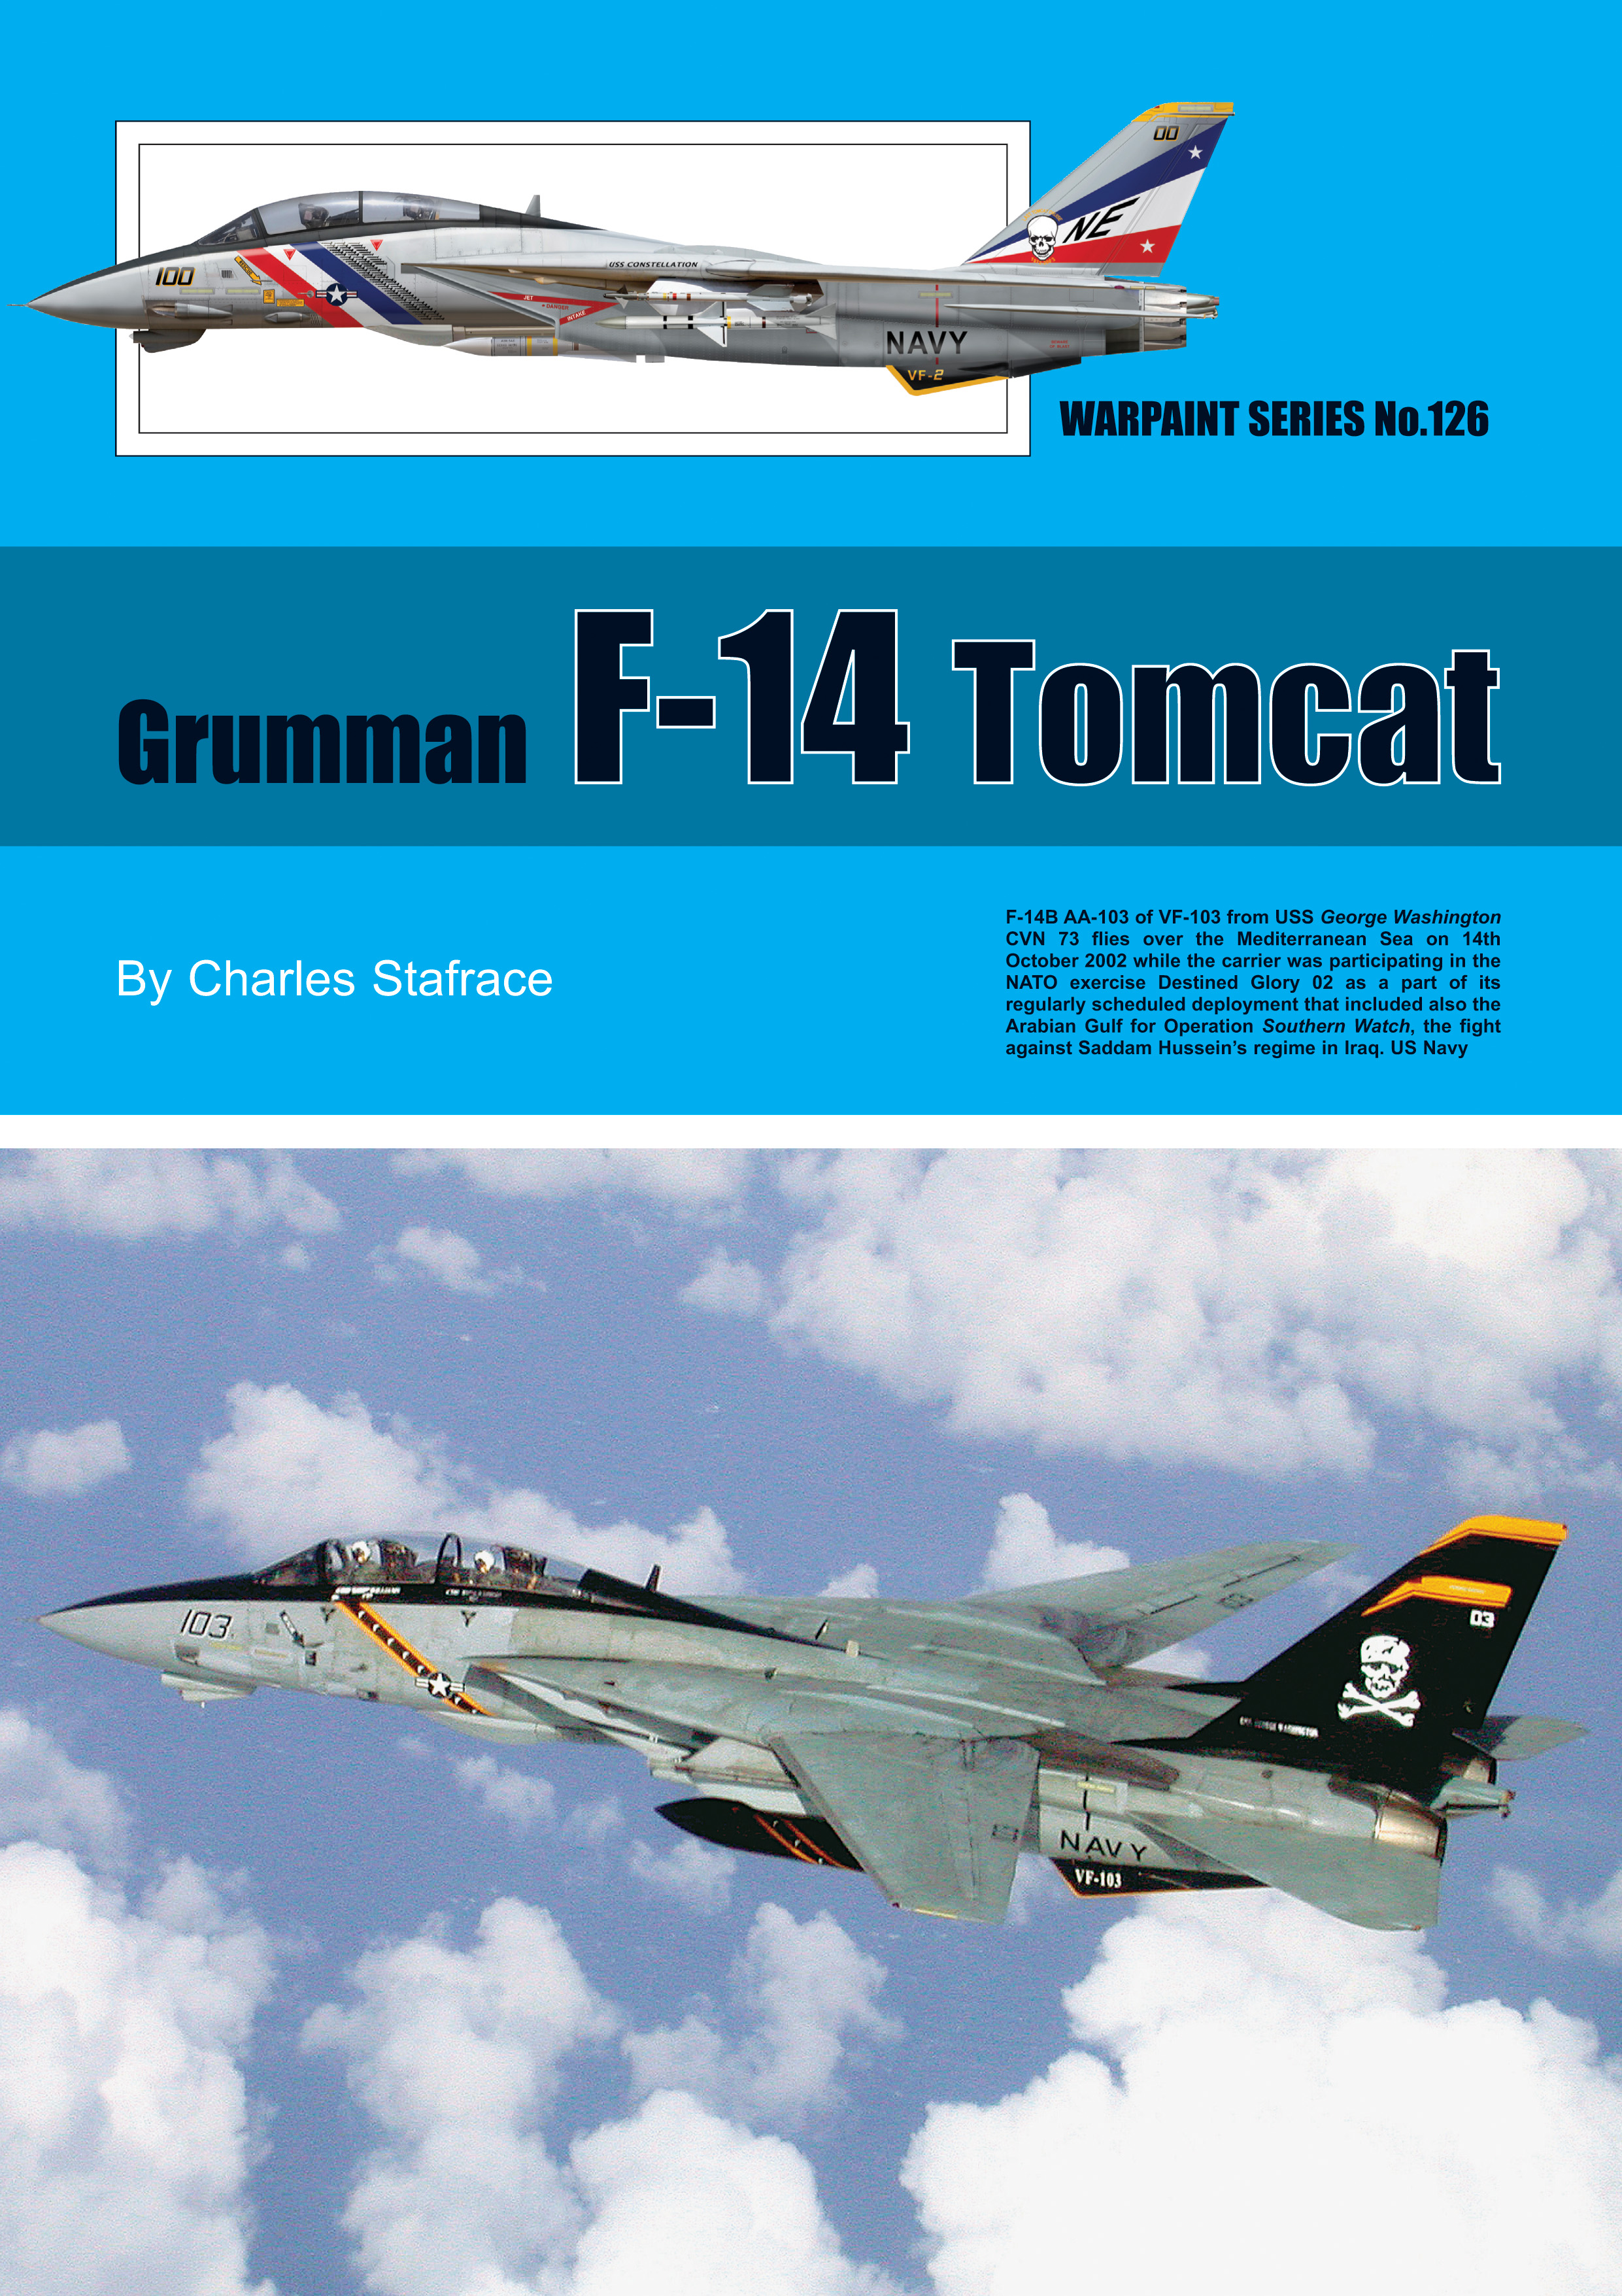 Guideline Publications 126 Grumman F-14 Tomcat OUT NOW